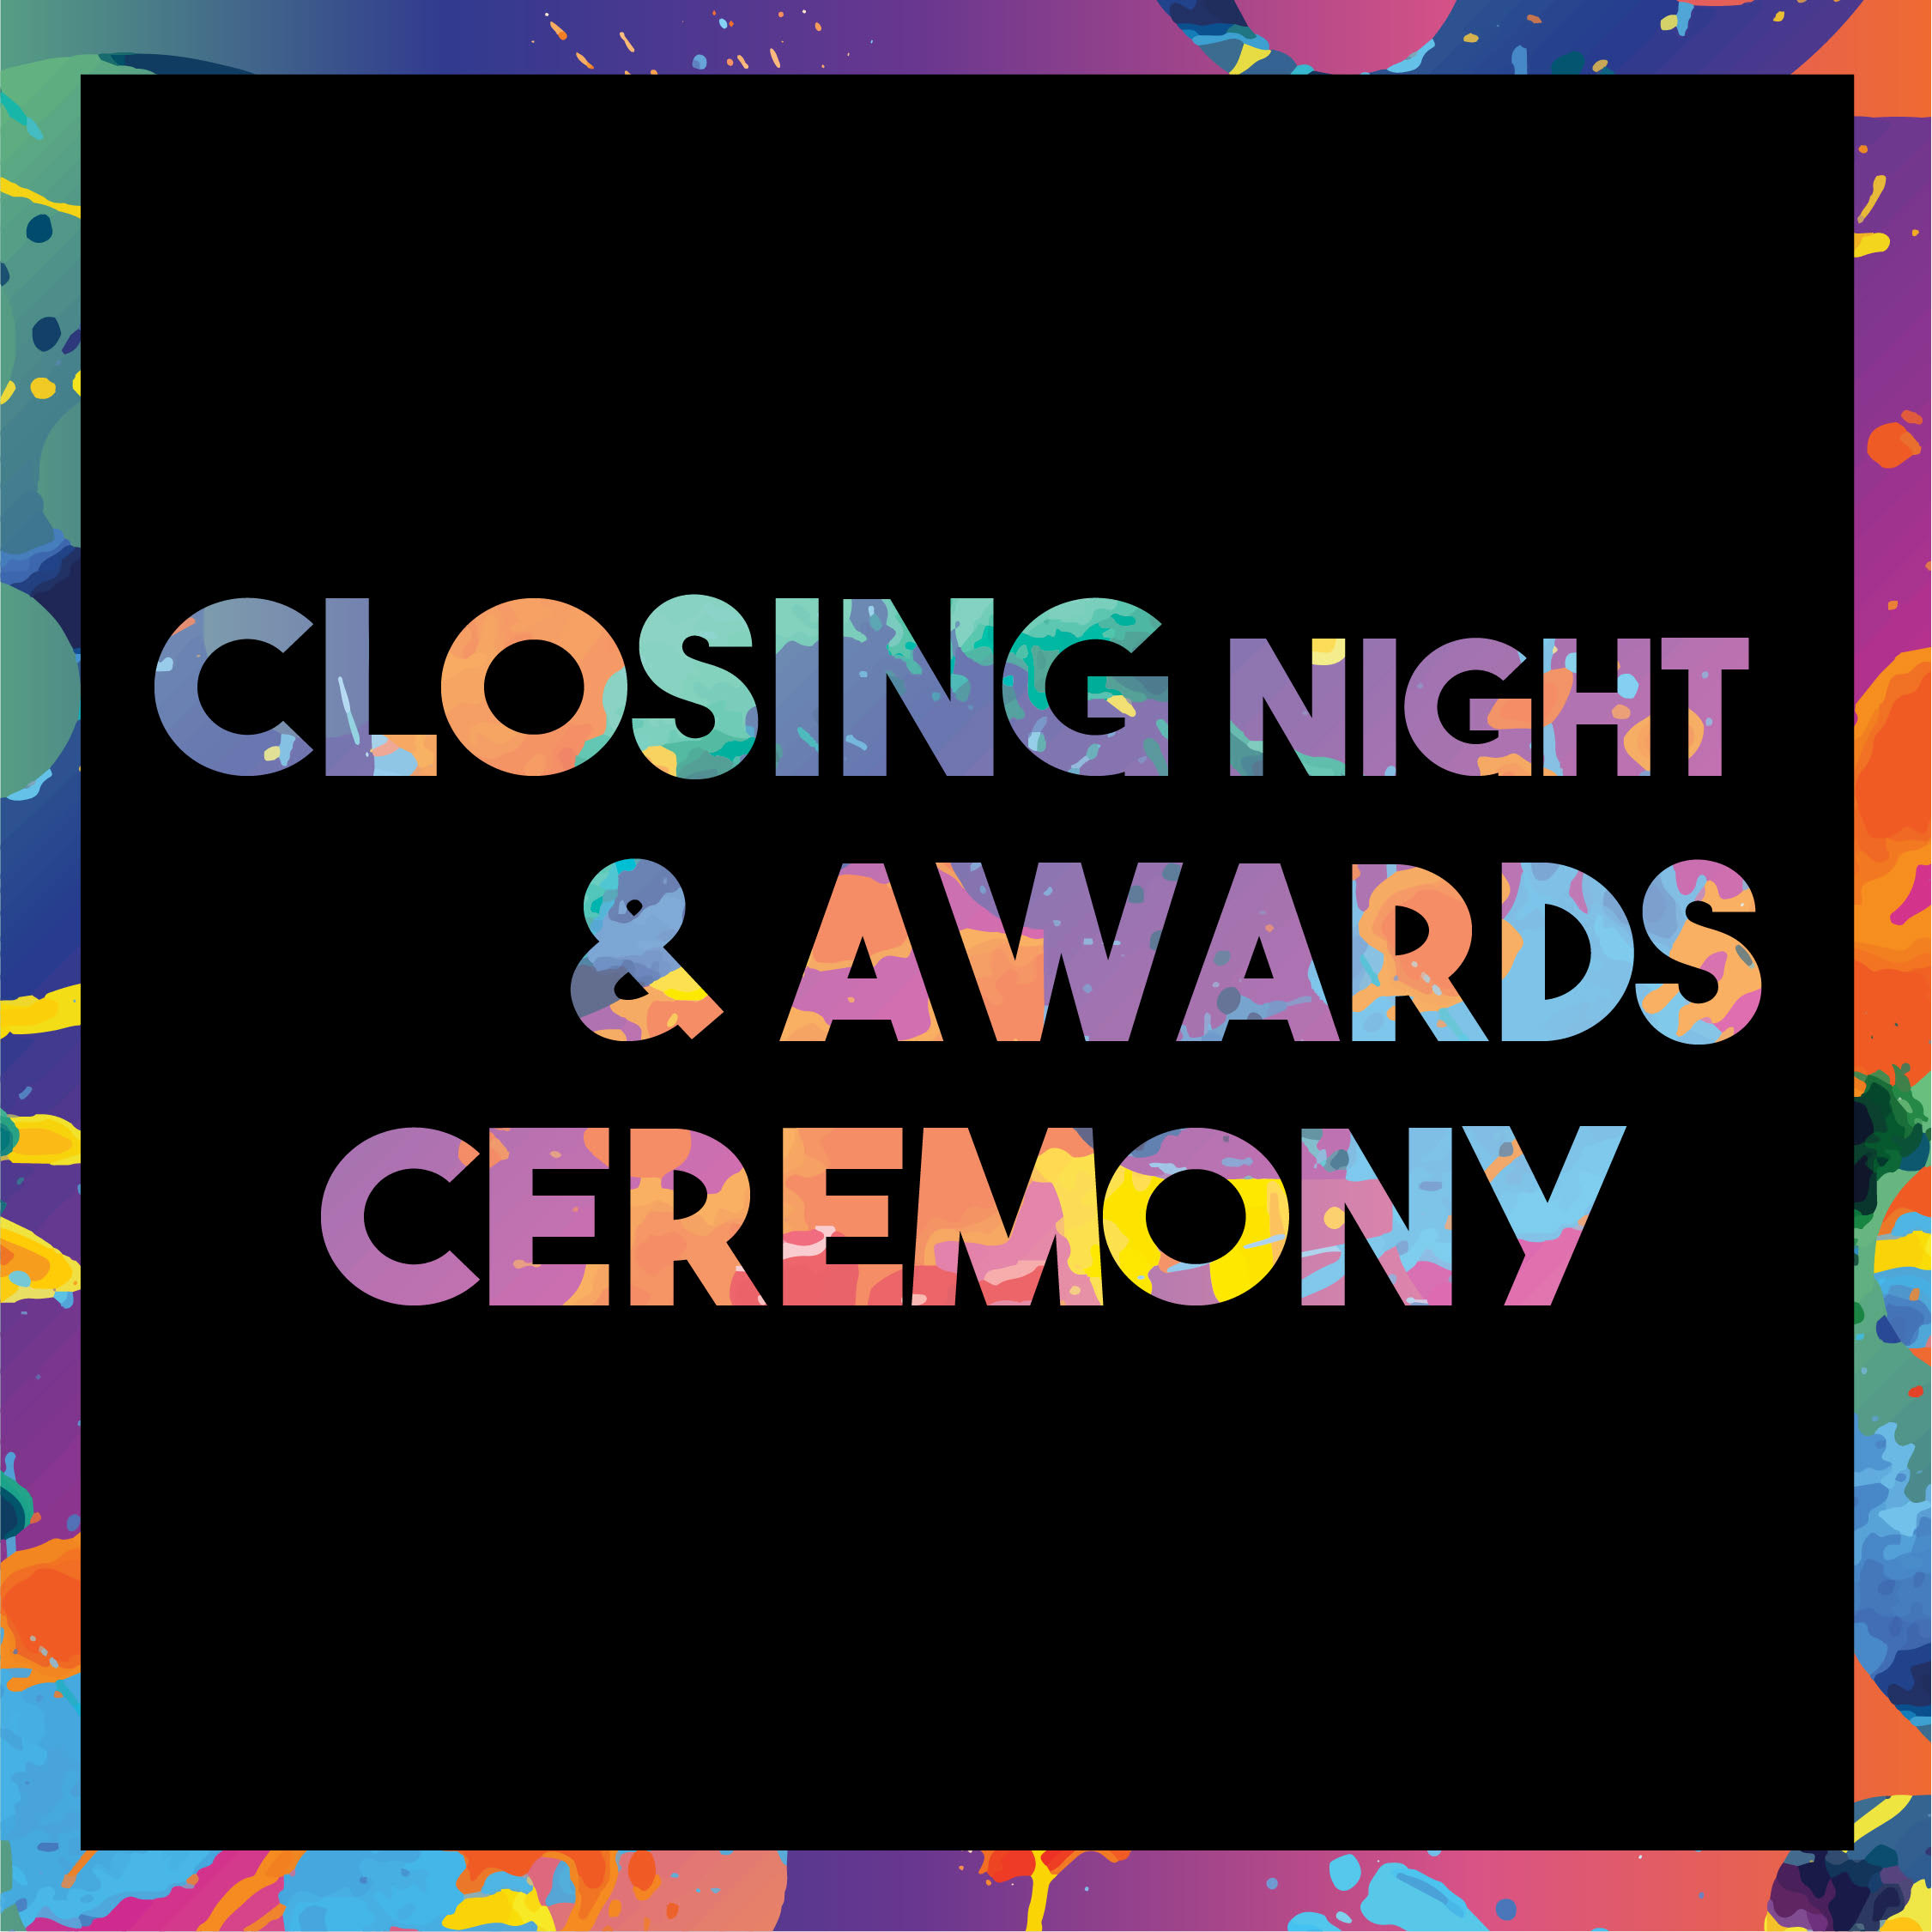 CLOSING NIGHT / AWARDS CEREMONY